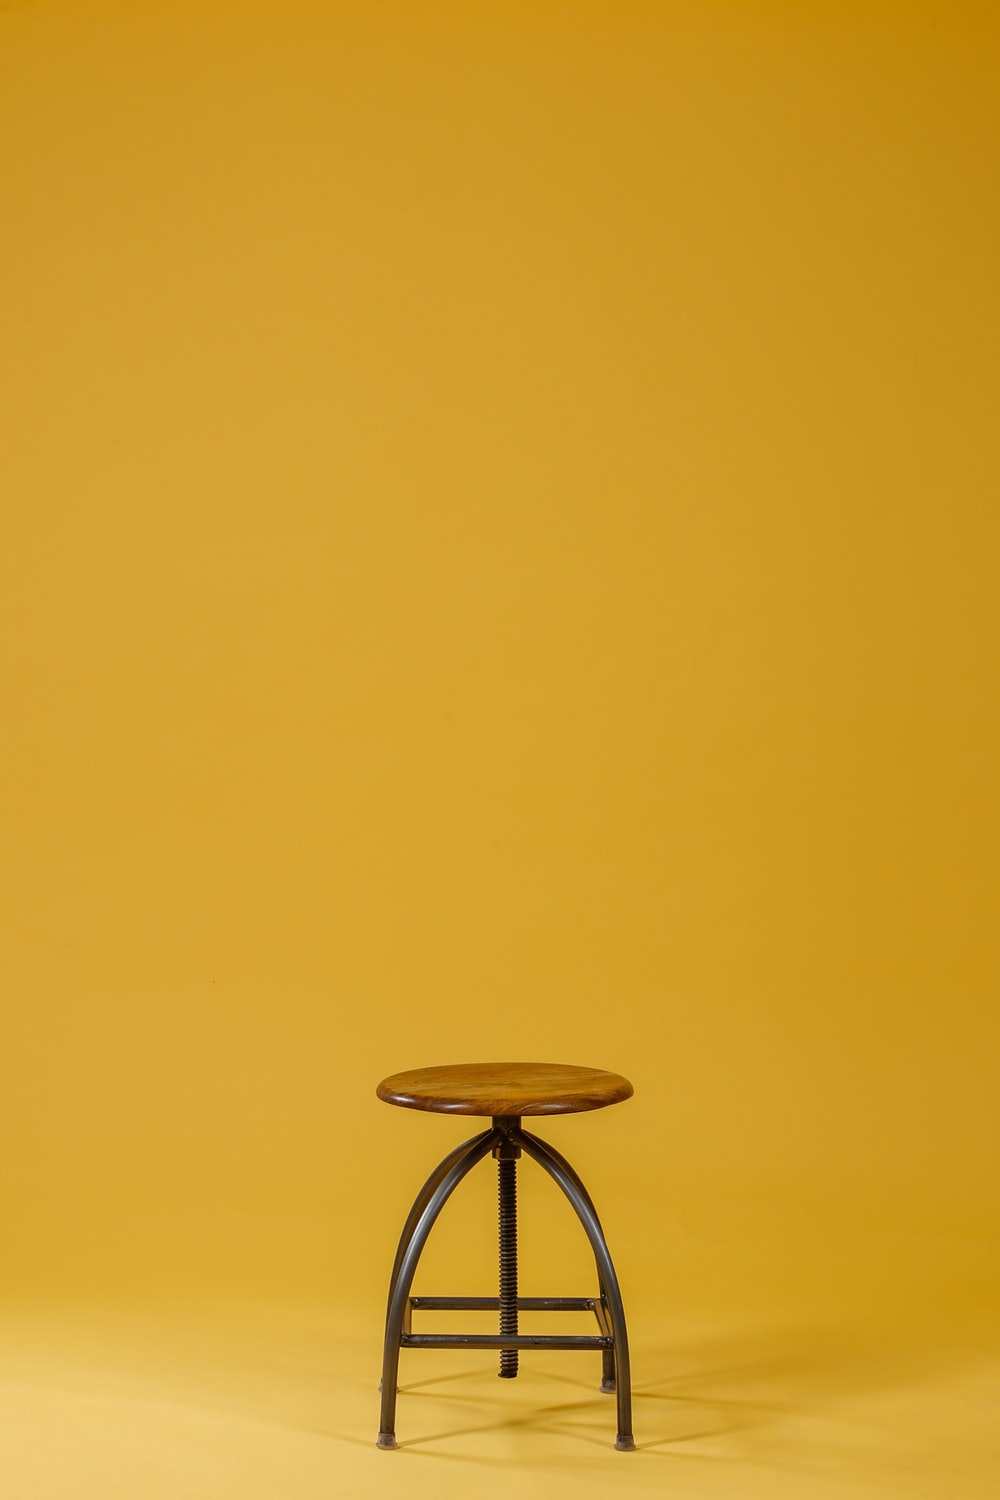 round brown wooden top and black base chair on yellow background